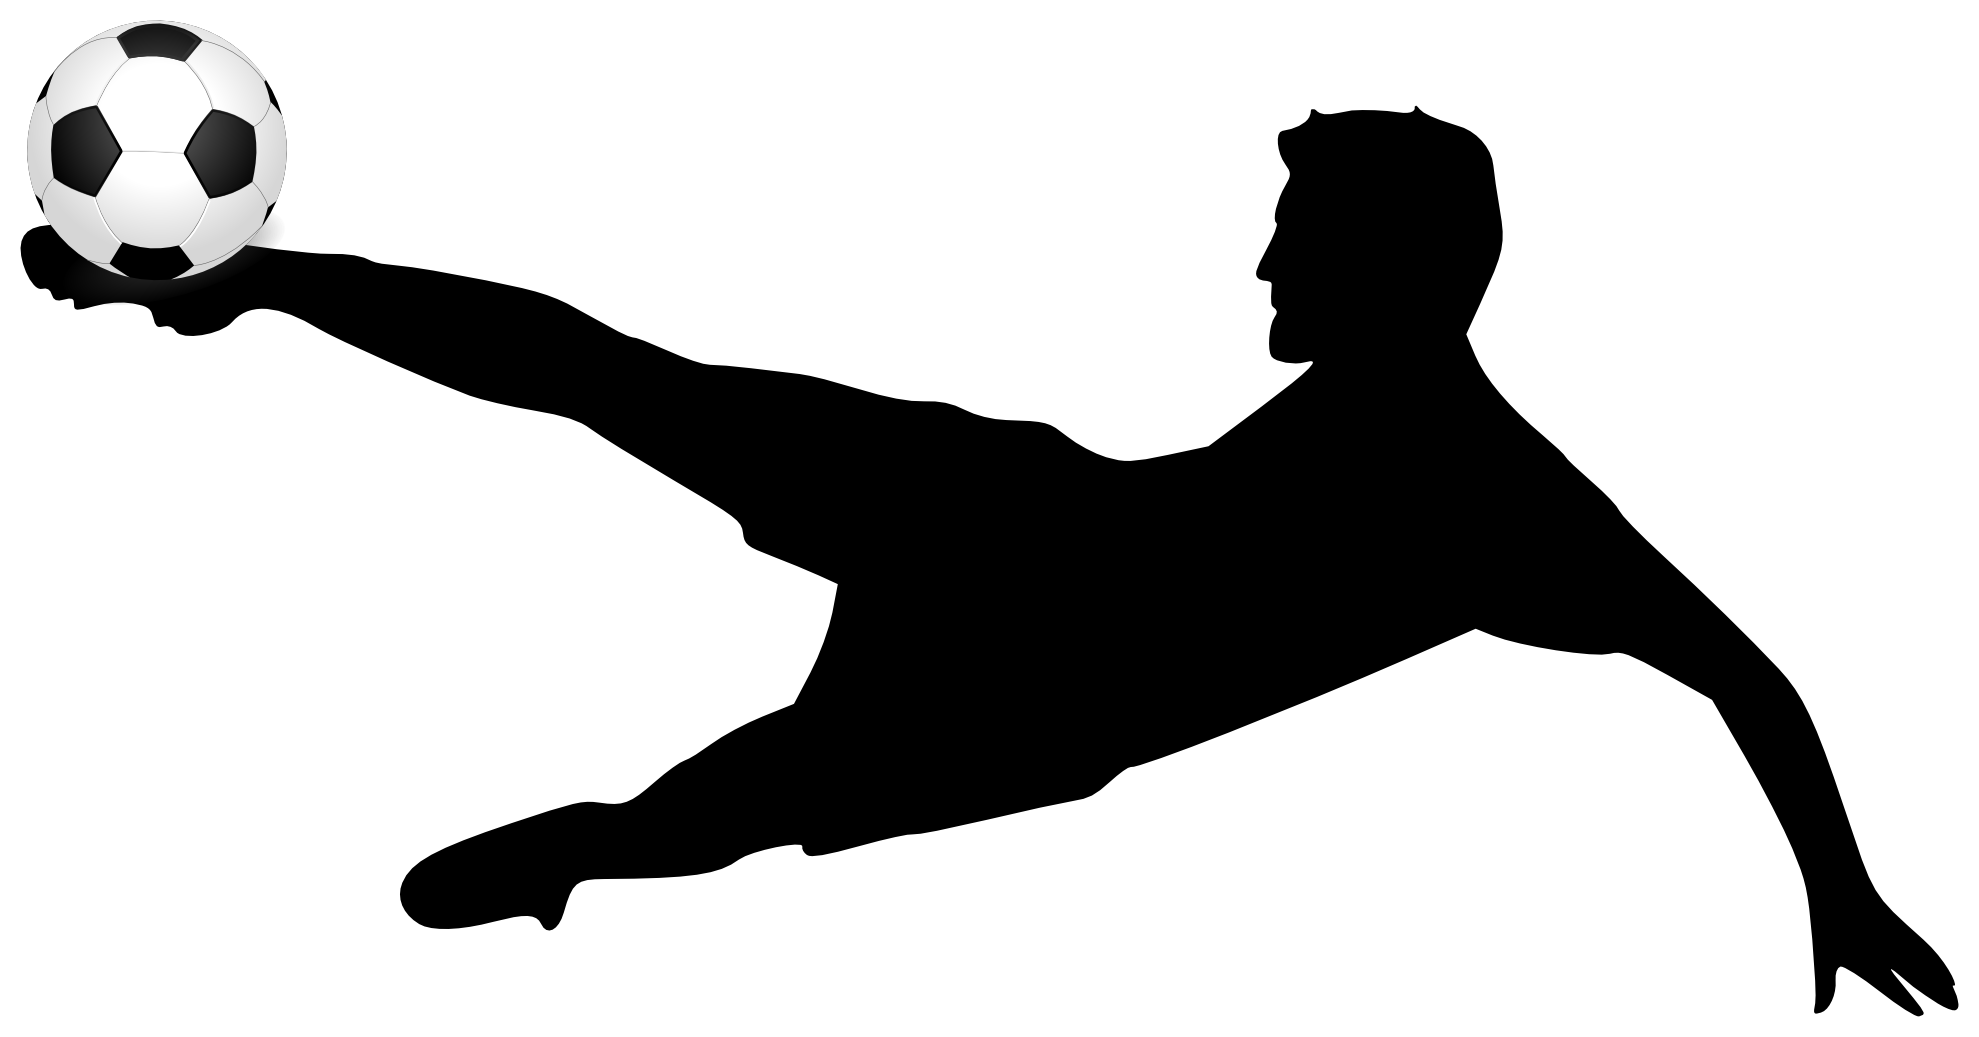 Soccer goal outline png. Clipart volleyball silhouette